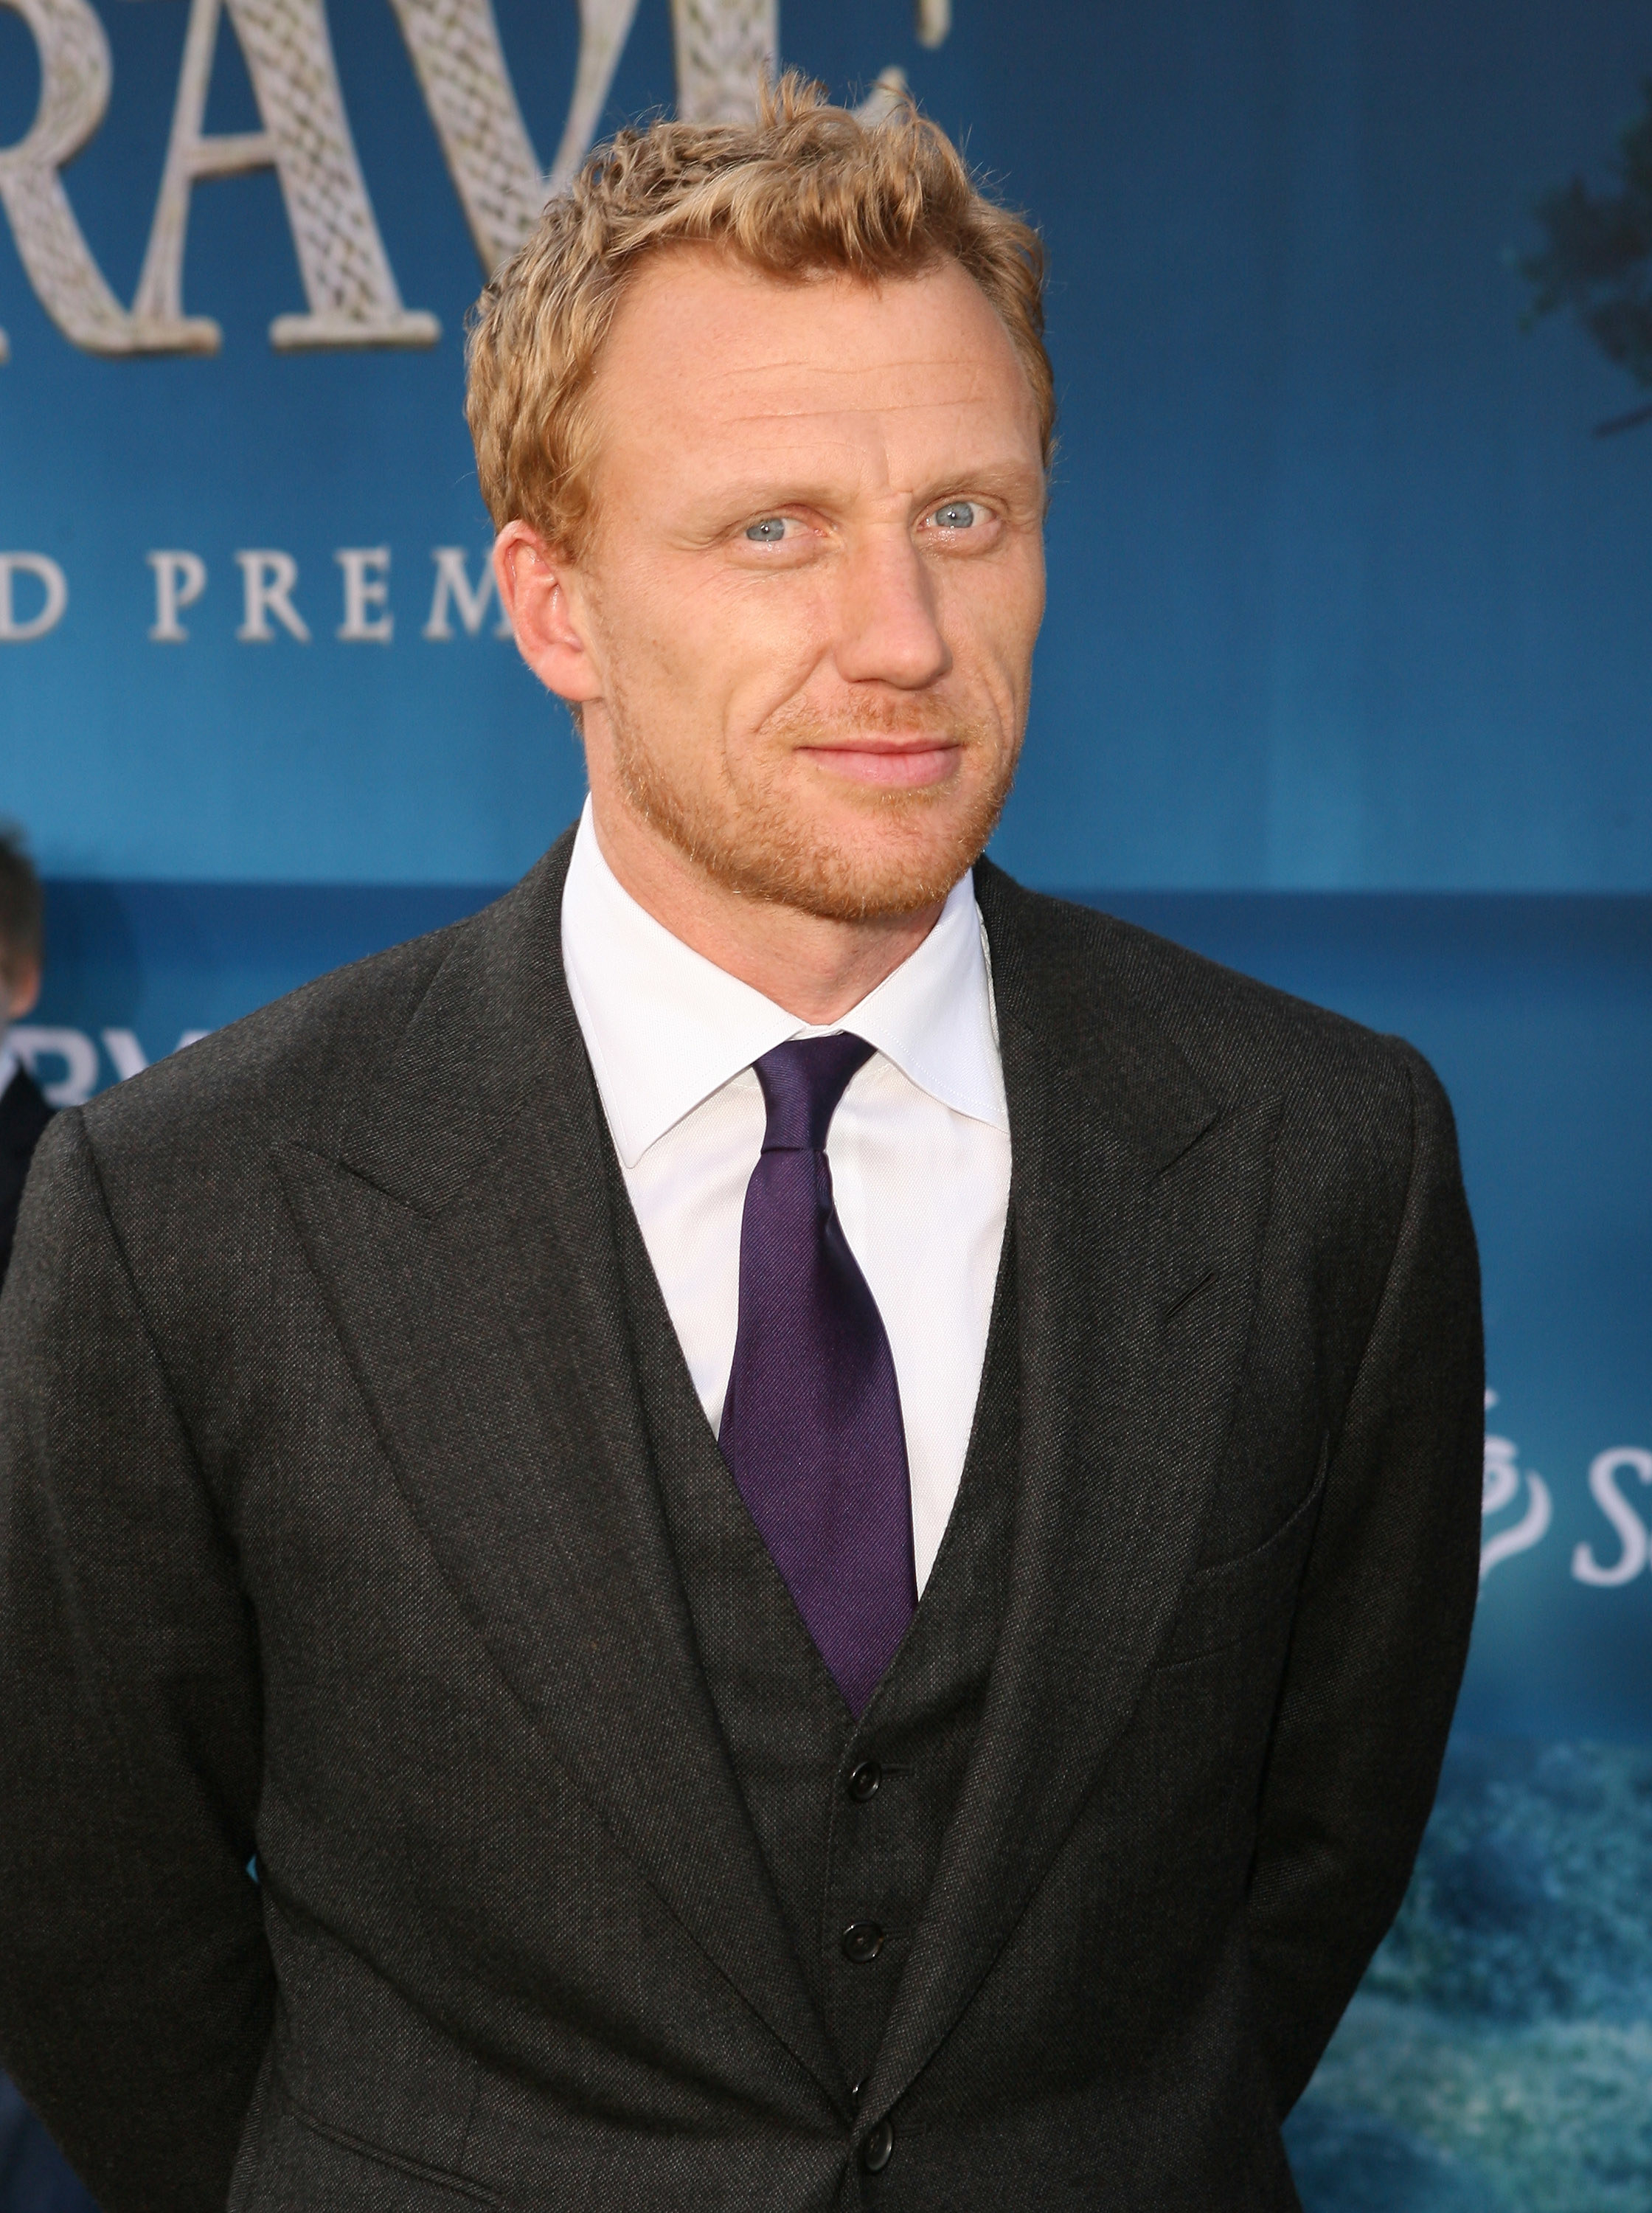 Kevin McKidd poses in a suit